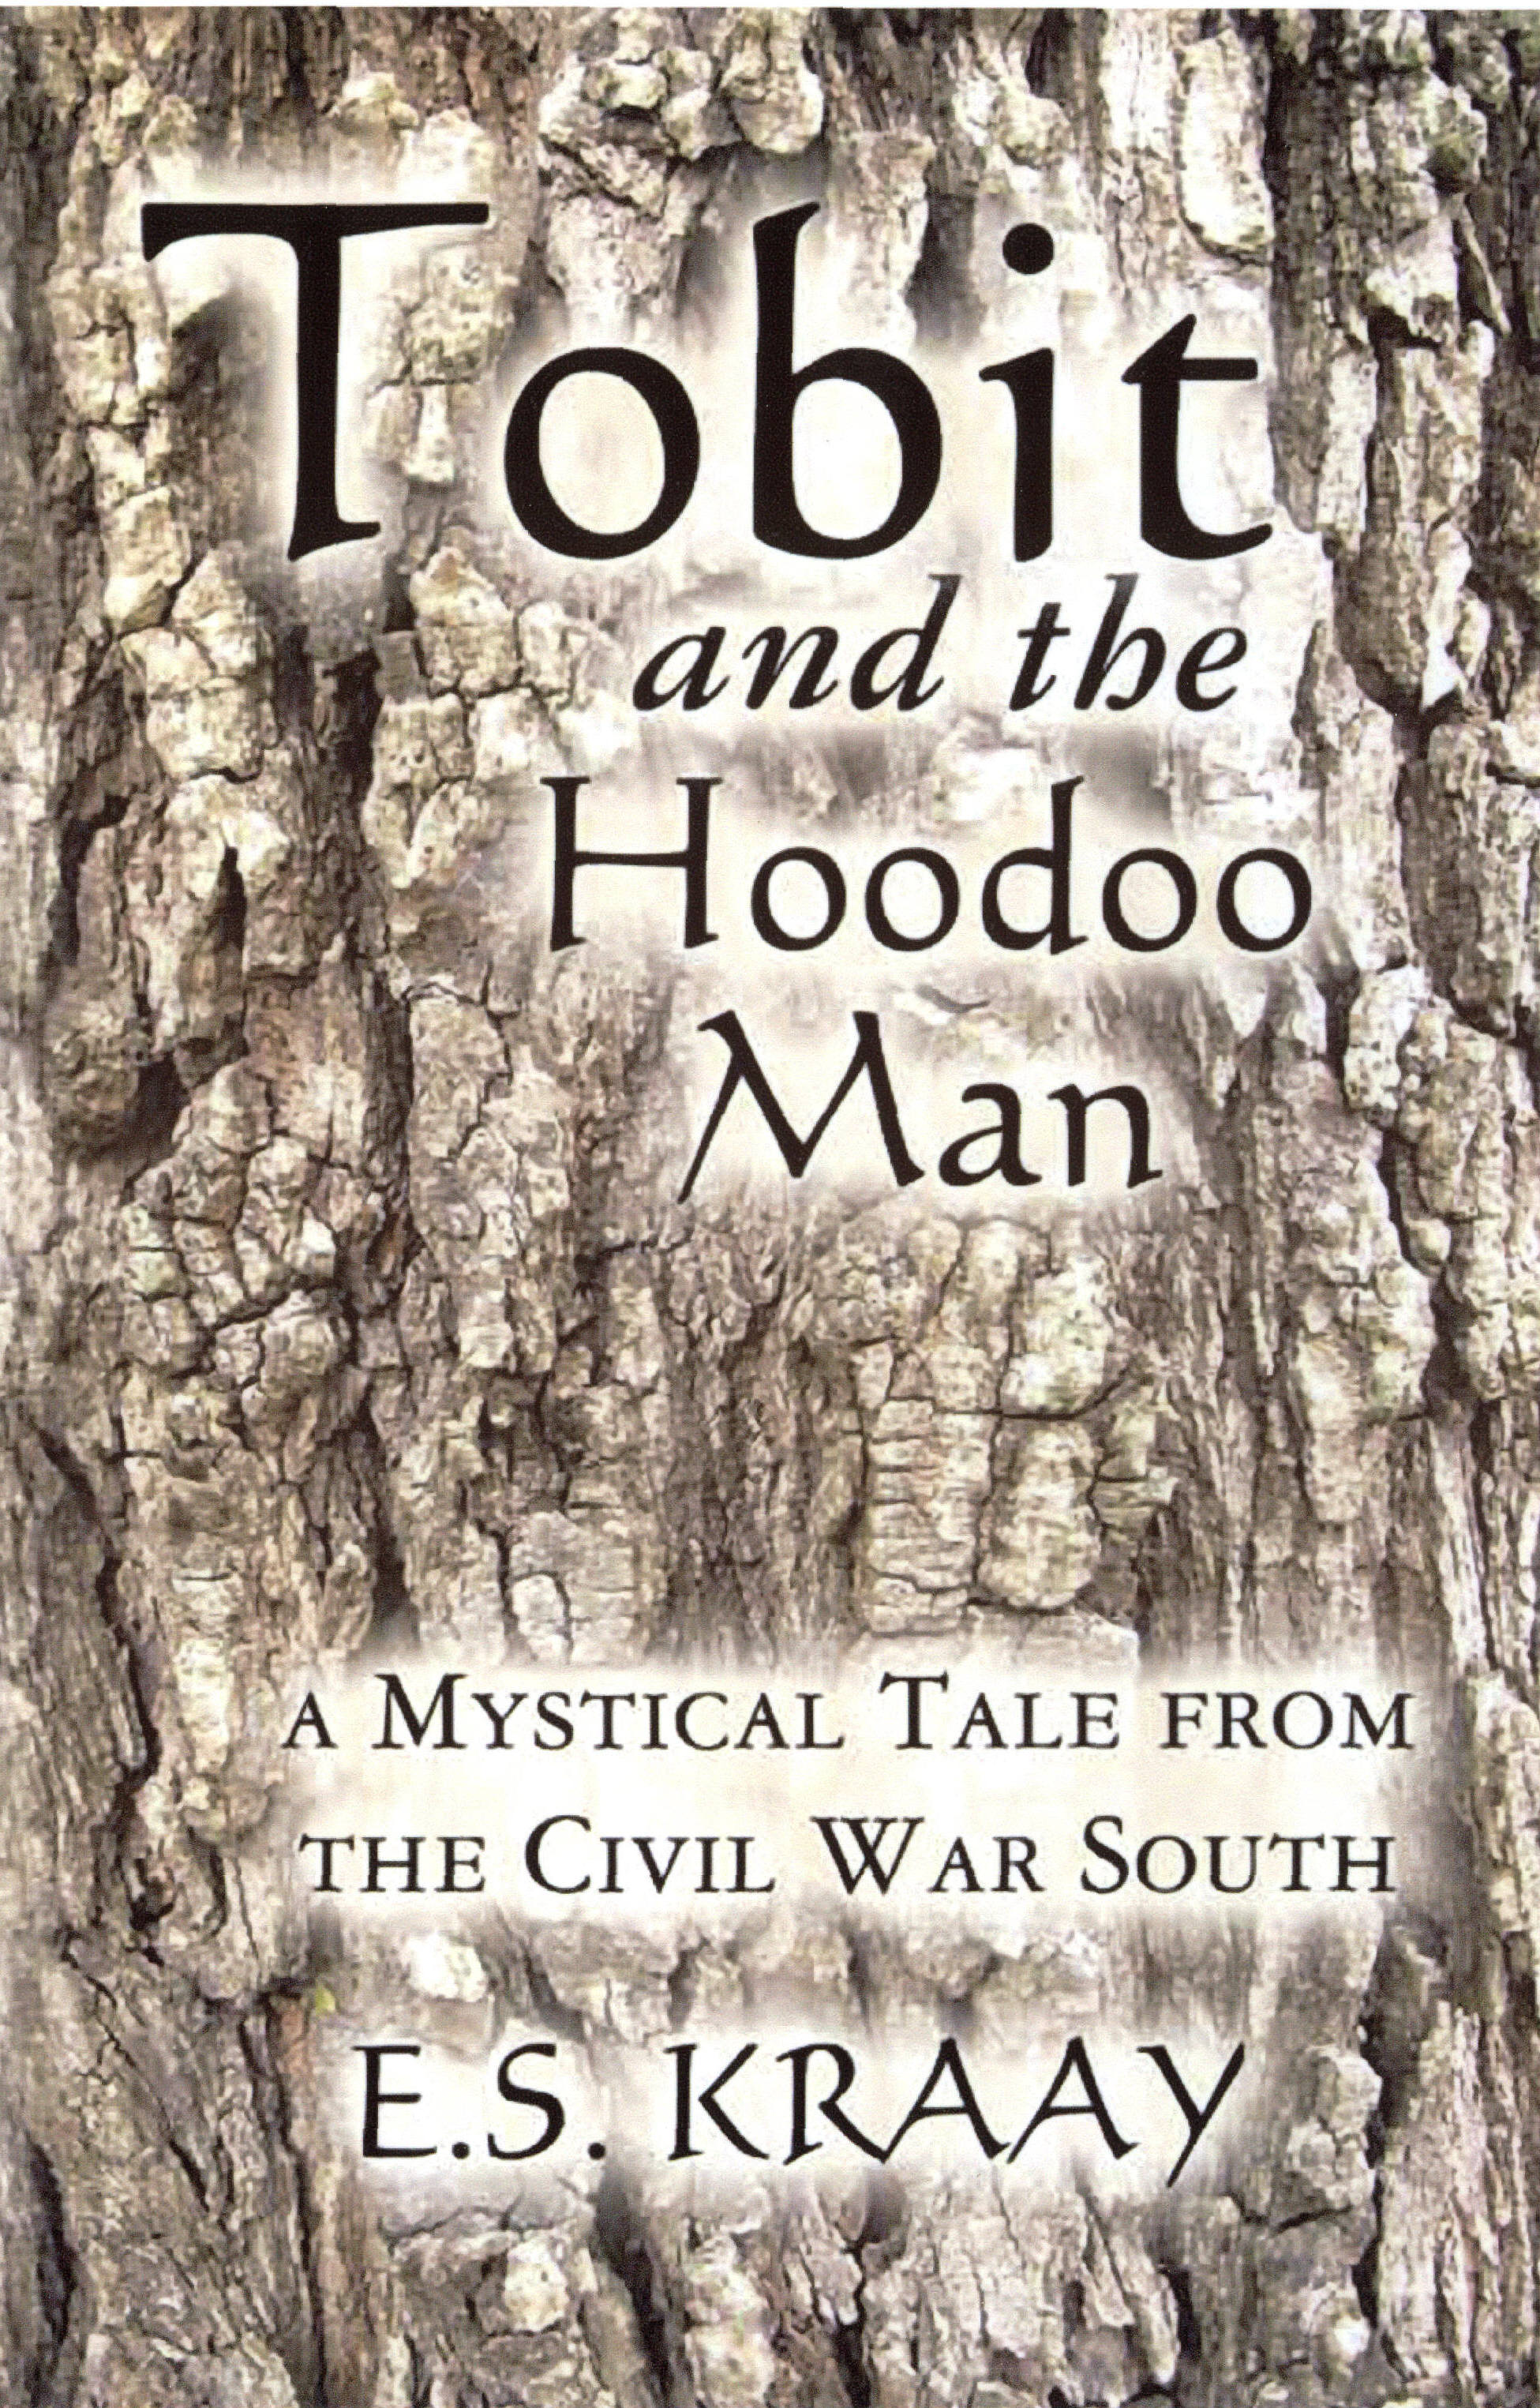 A Mystical Tale from the Civil War South